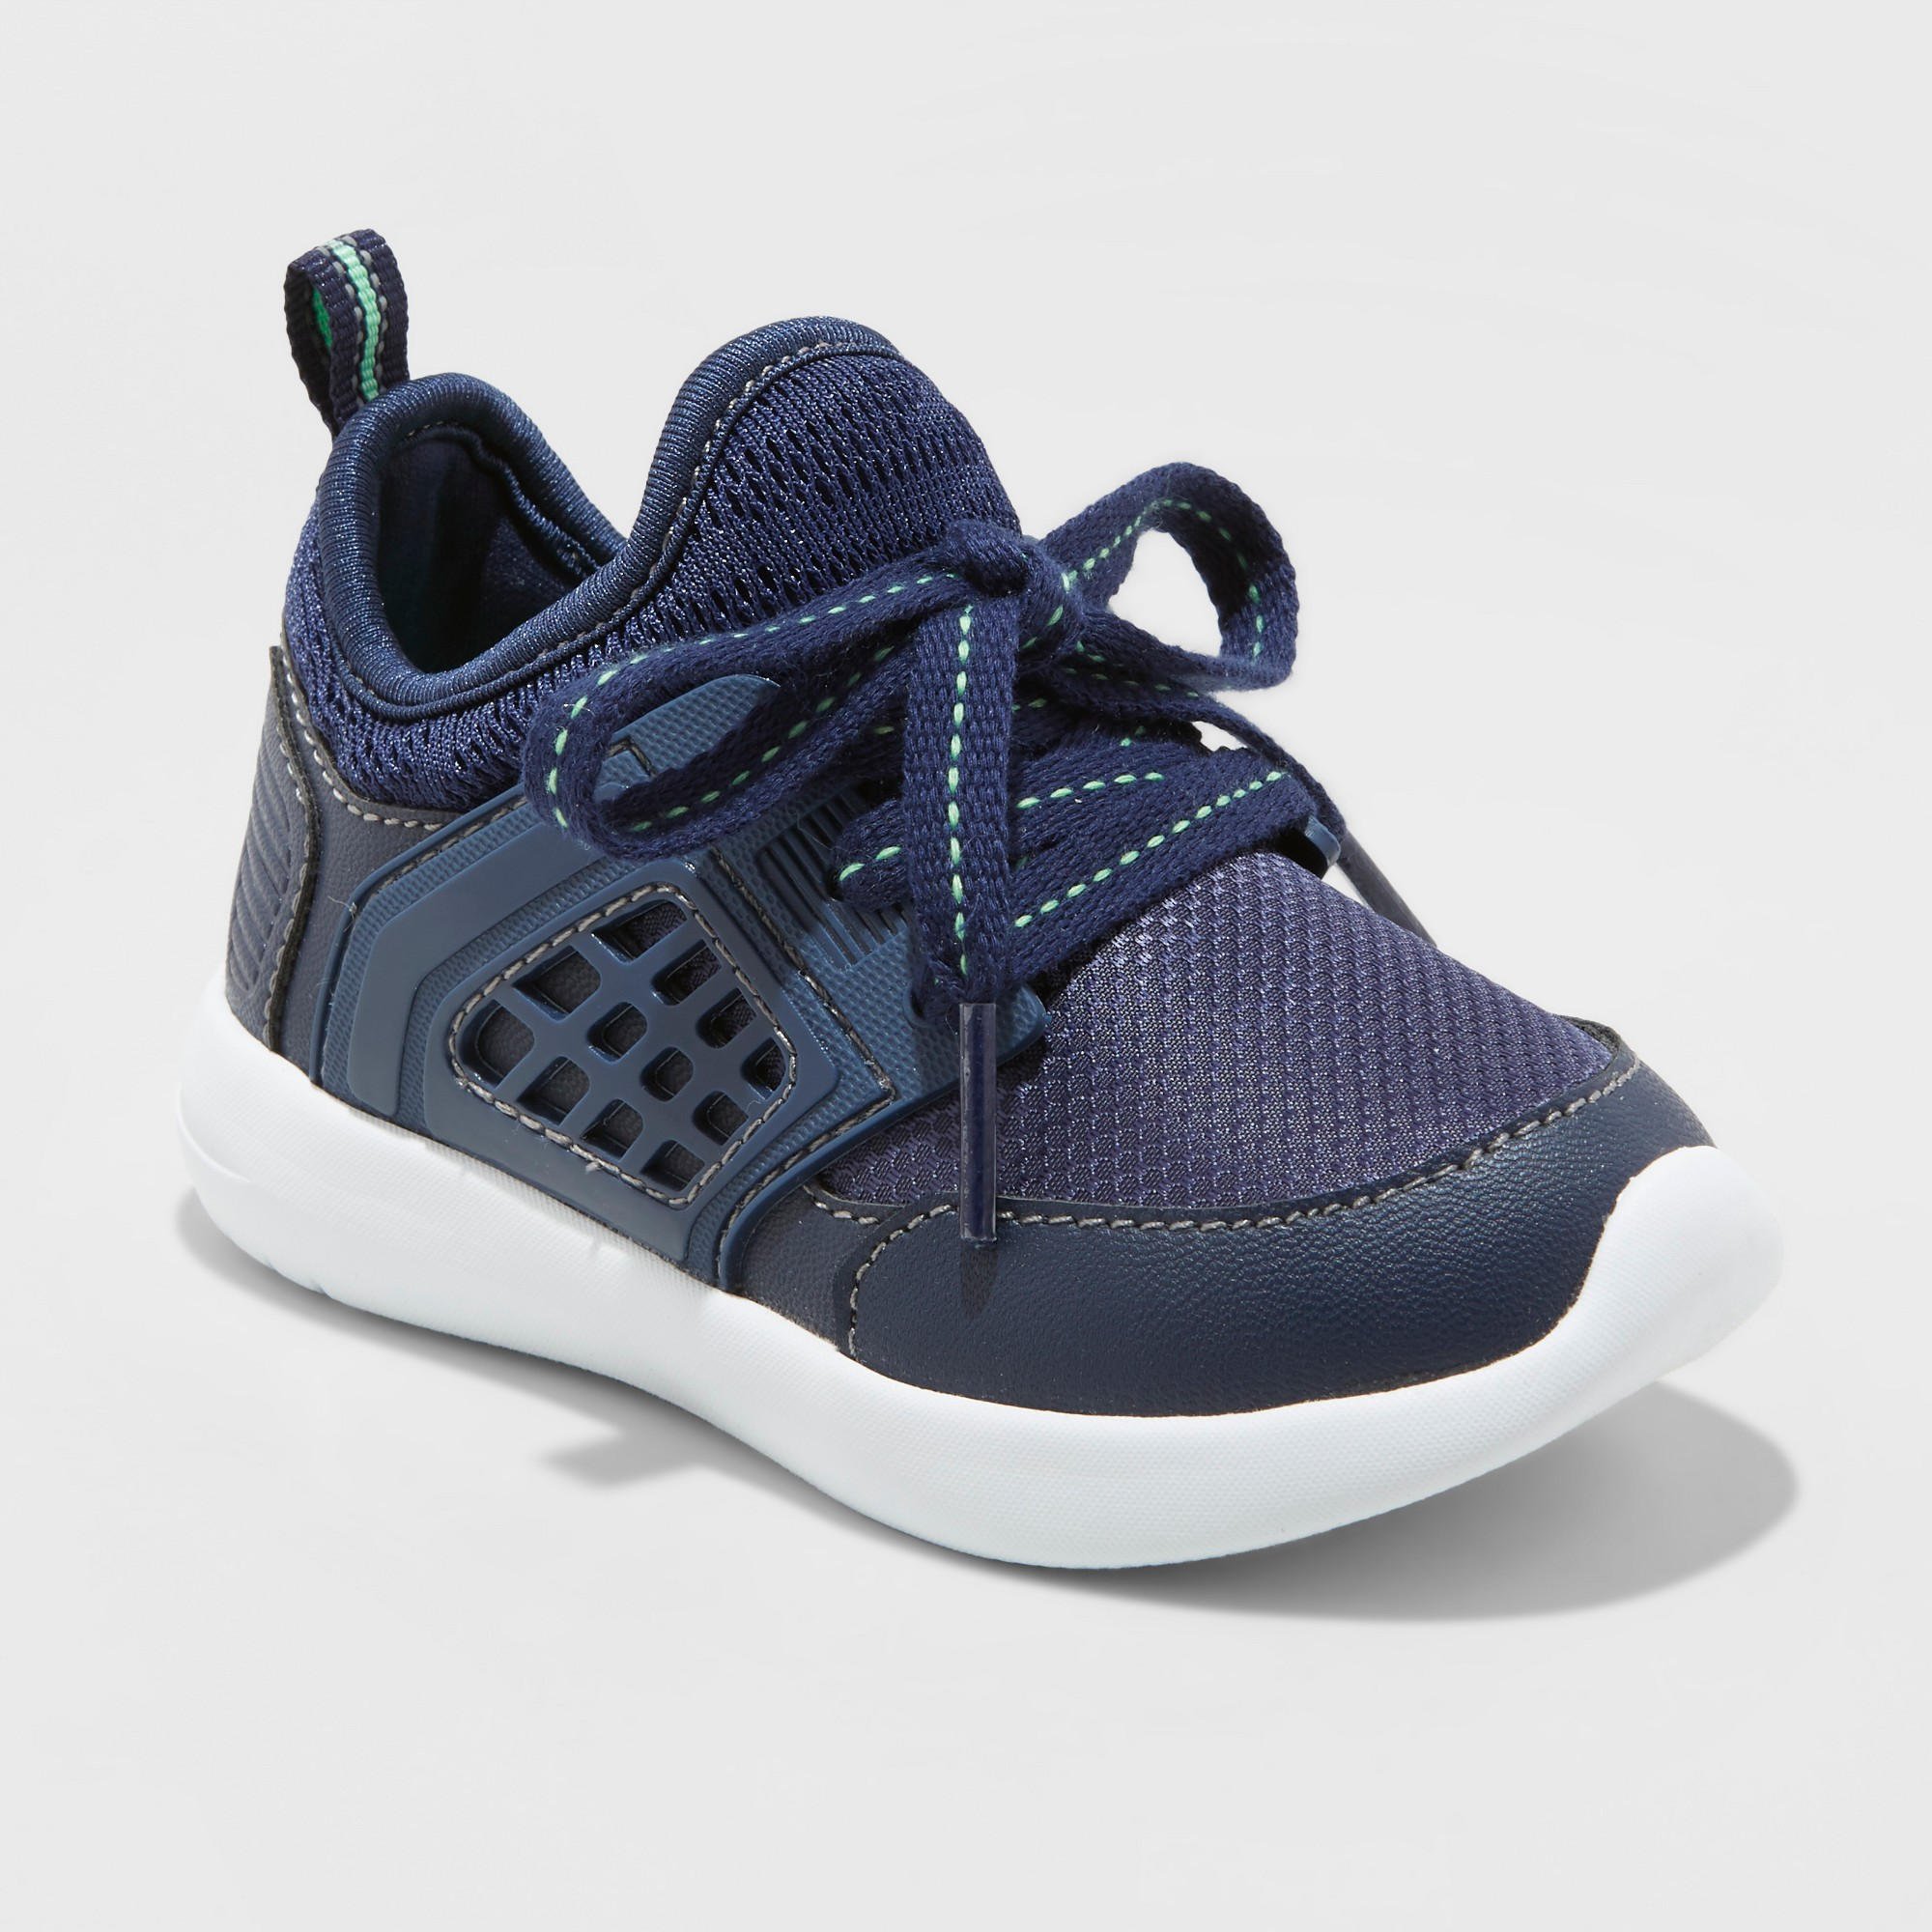 Toddler Boys Zachary Athletic Sneakers Cat Jack Navy 10 Boy S Size Small Blue Toddler Boy Shoes Boys Shoes Blue Sneakers